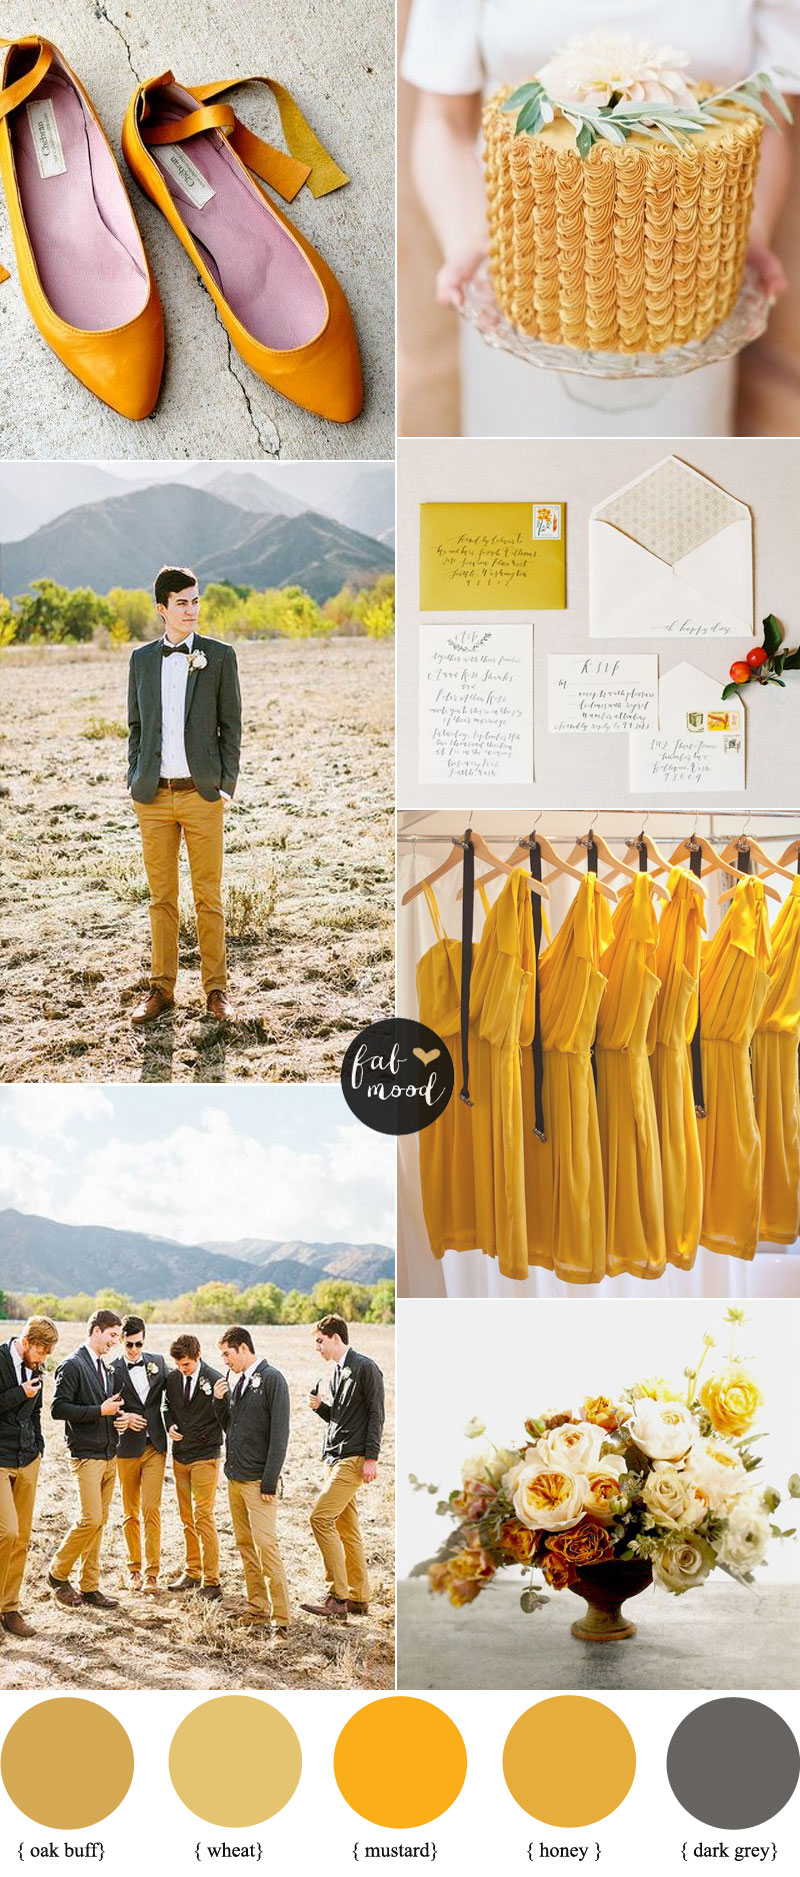 Oak Buff , Mustard and Grey Wedding | Pantone Fall 2015 inspired | fabmood.com